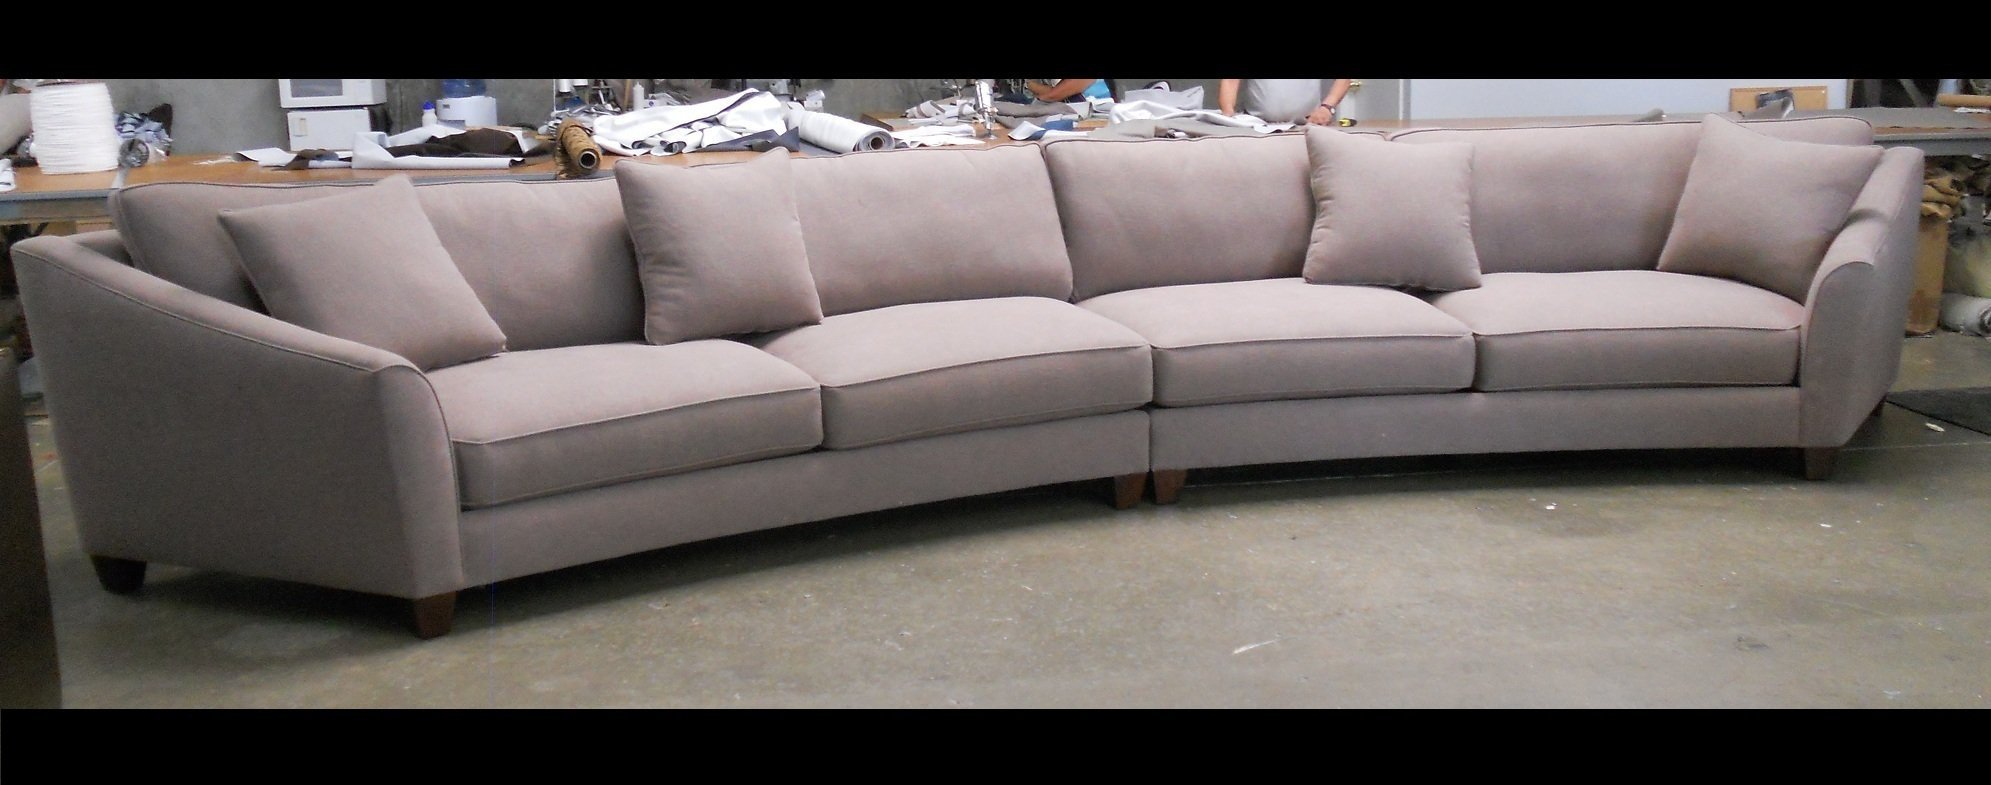 Awesome Curved Couch Modern Sofa Ideas With Curved Couch